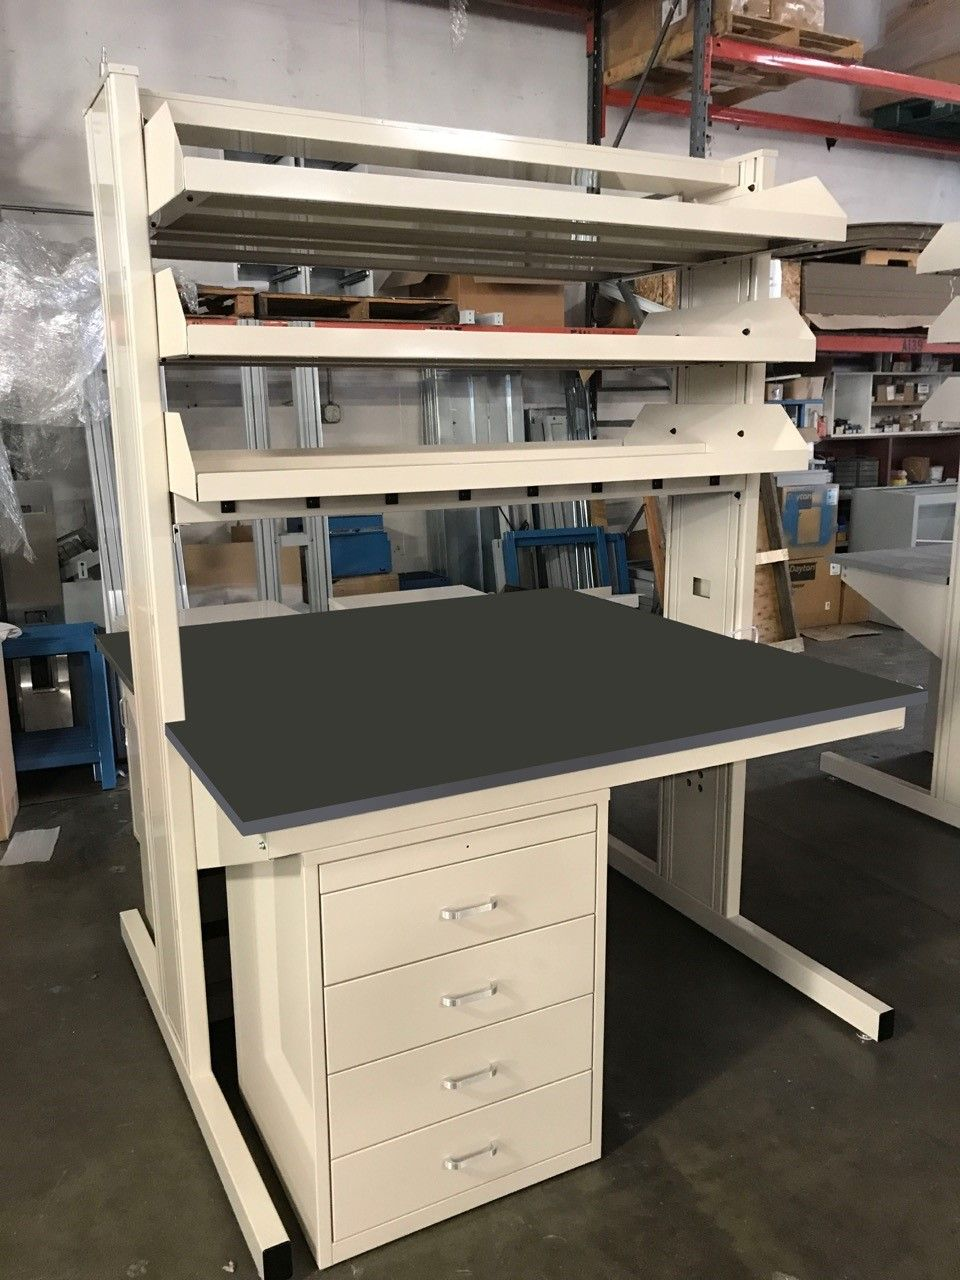 Laboratory Workbenches Technical Lab Workstations For Industrial Use Workbench Workstation Laboratory